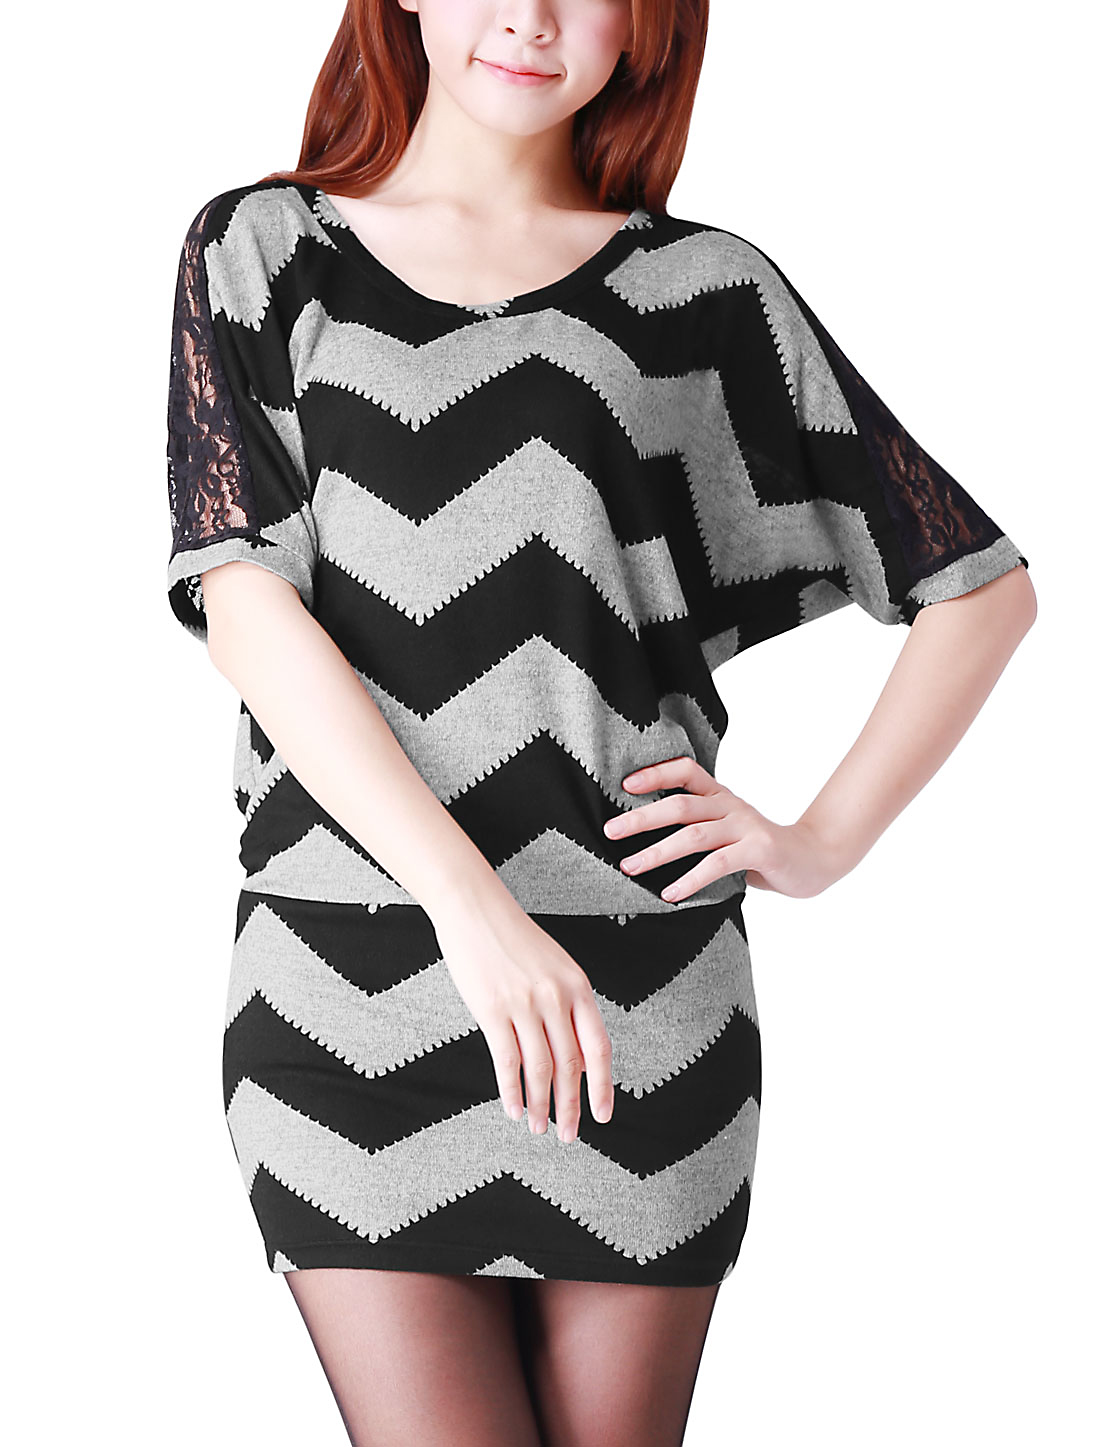 Women 1/2 Sleeves Scoop Neck Zigzag Pattern Gray Black Tunic Top 1X